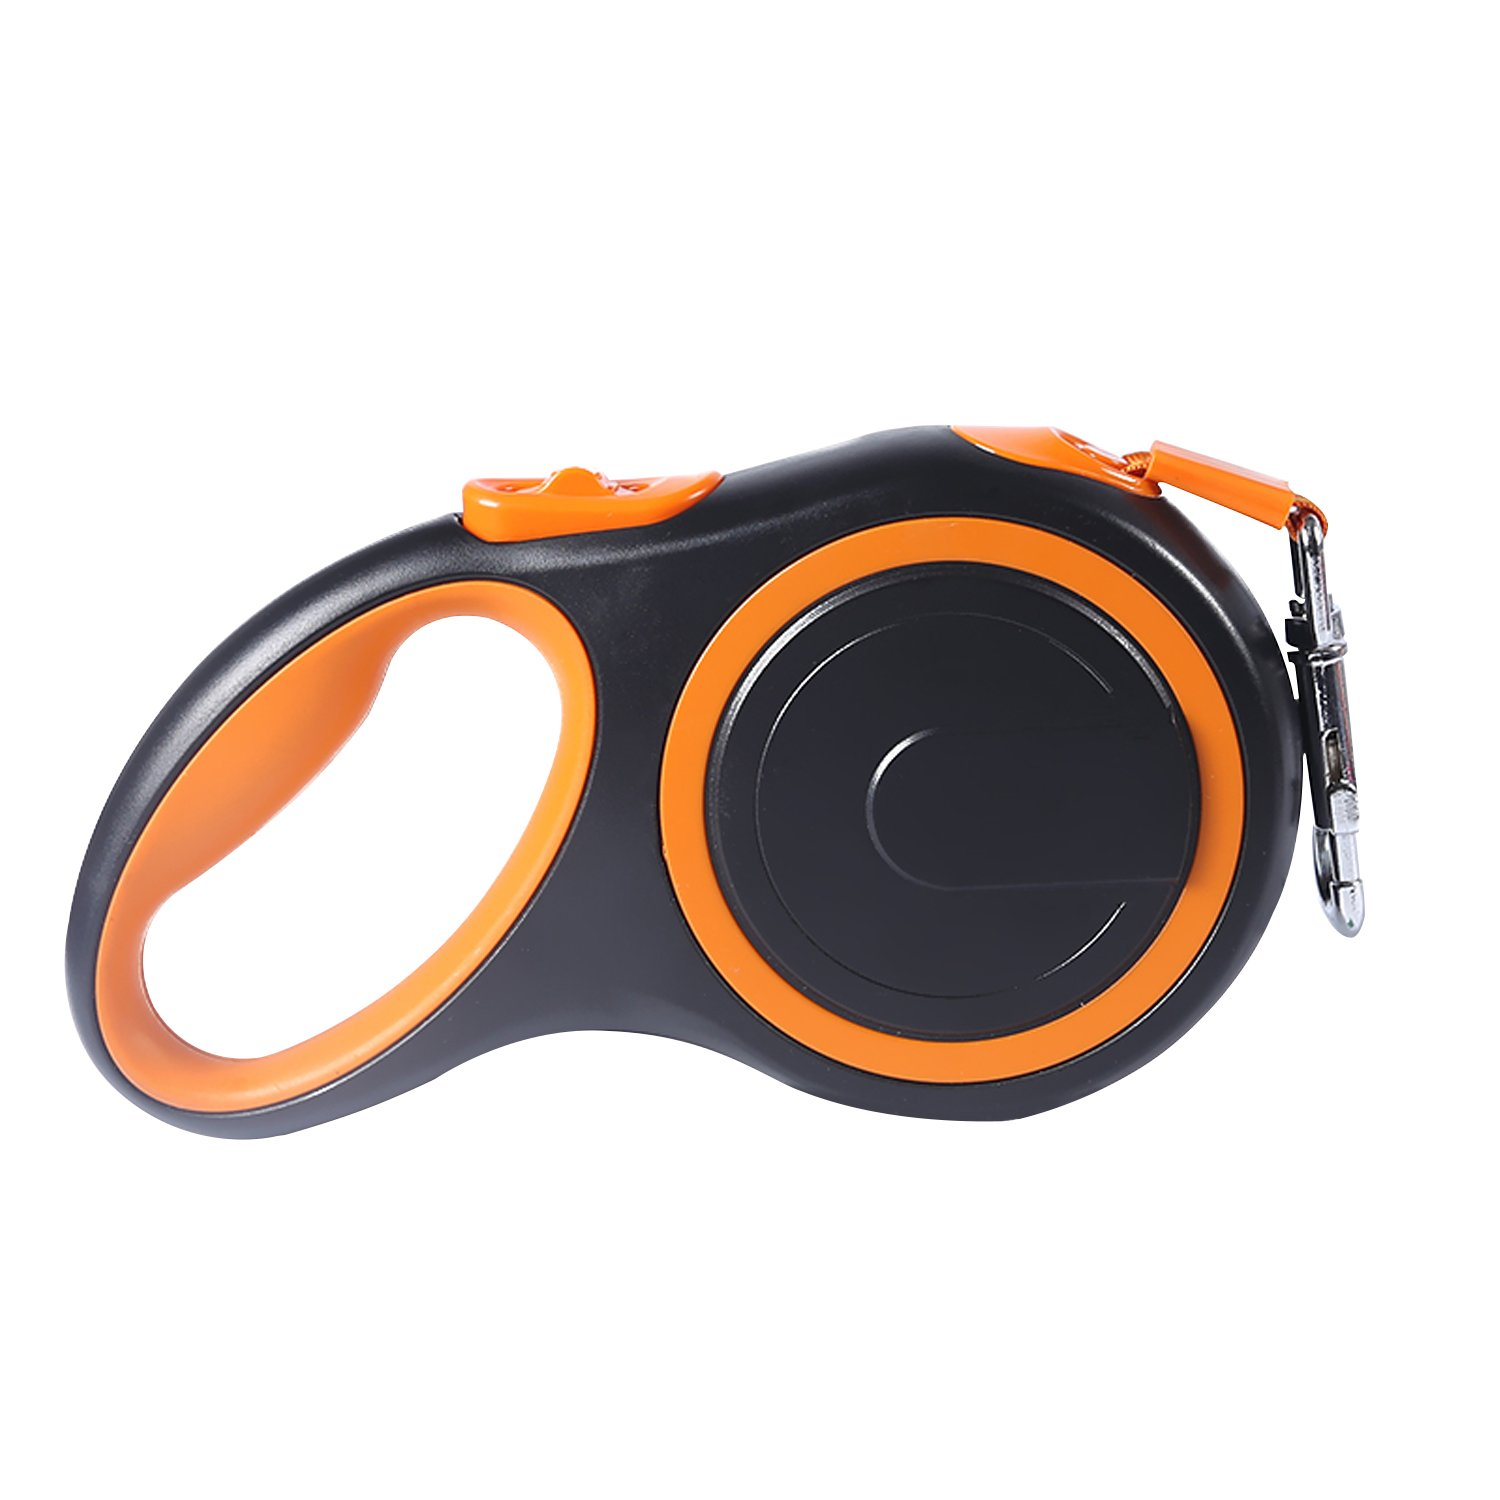 orange Pet Deluxe Retractable Dog Leash, Pet Walking Leash Retractable 16.5 ft for Small Medium Large Dogs Up to 88lbs, Tangle Free with One Button Break & Lock, Dog Walking Running & Training (orange)